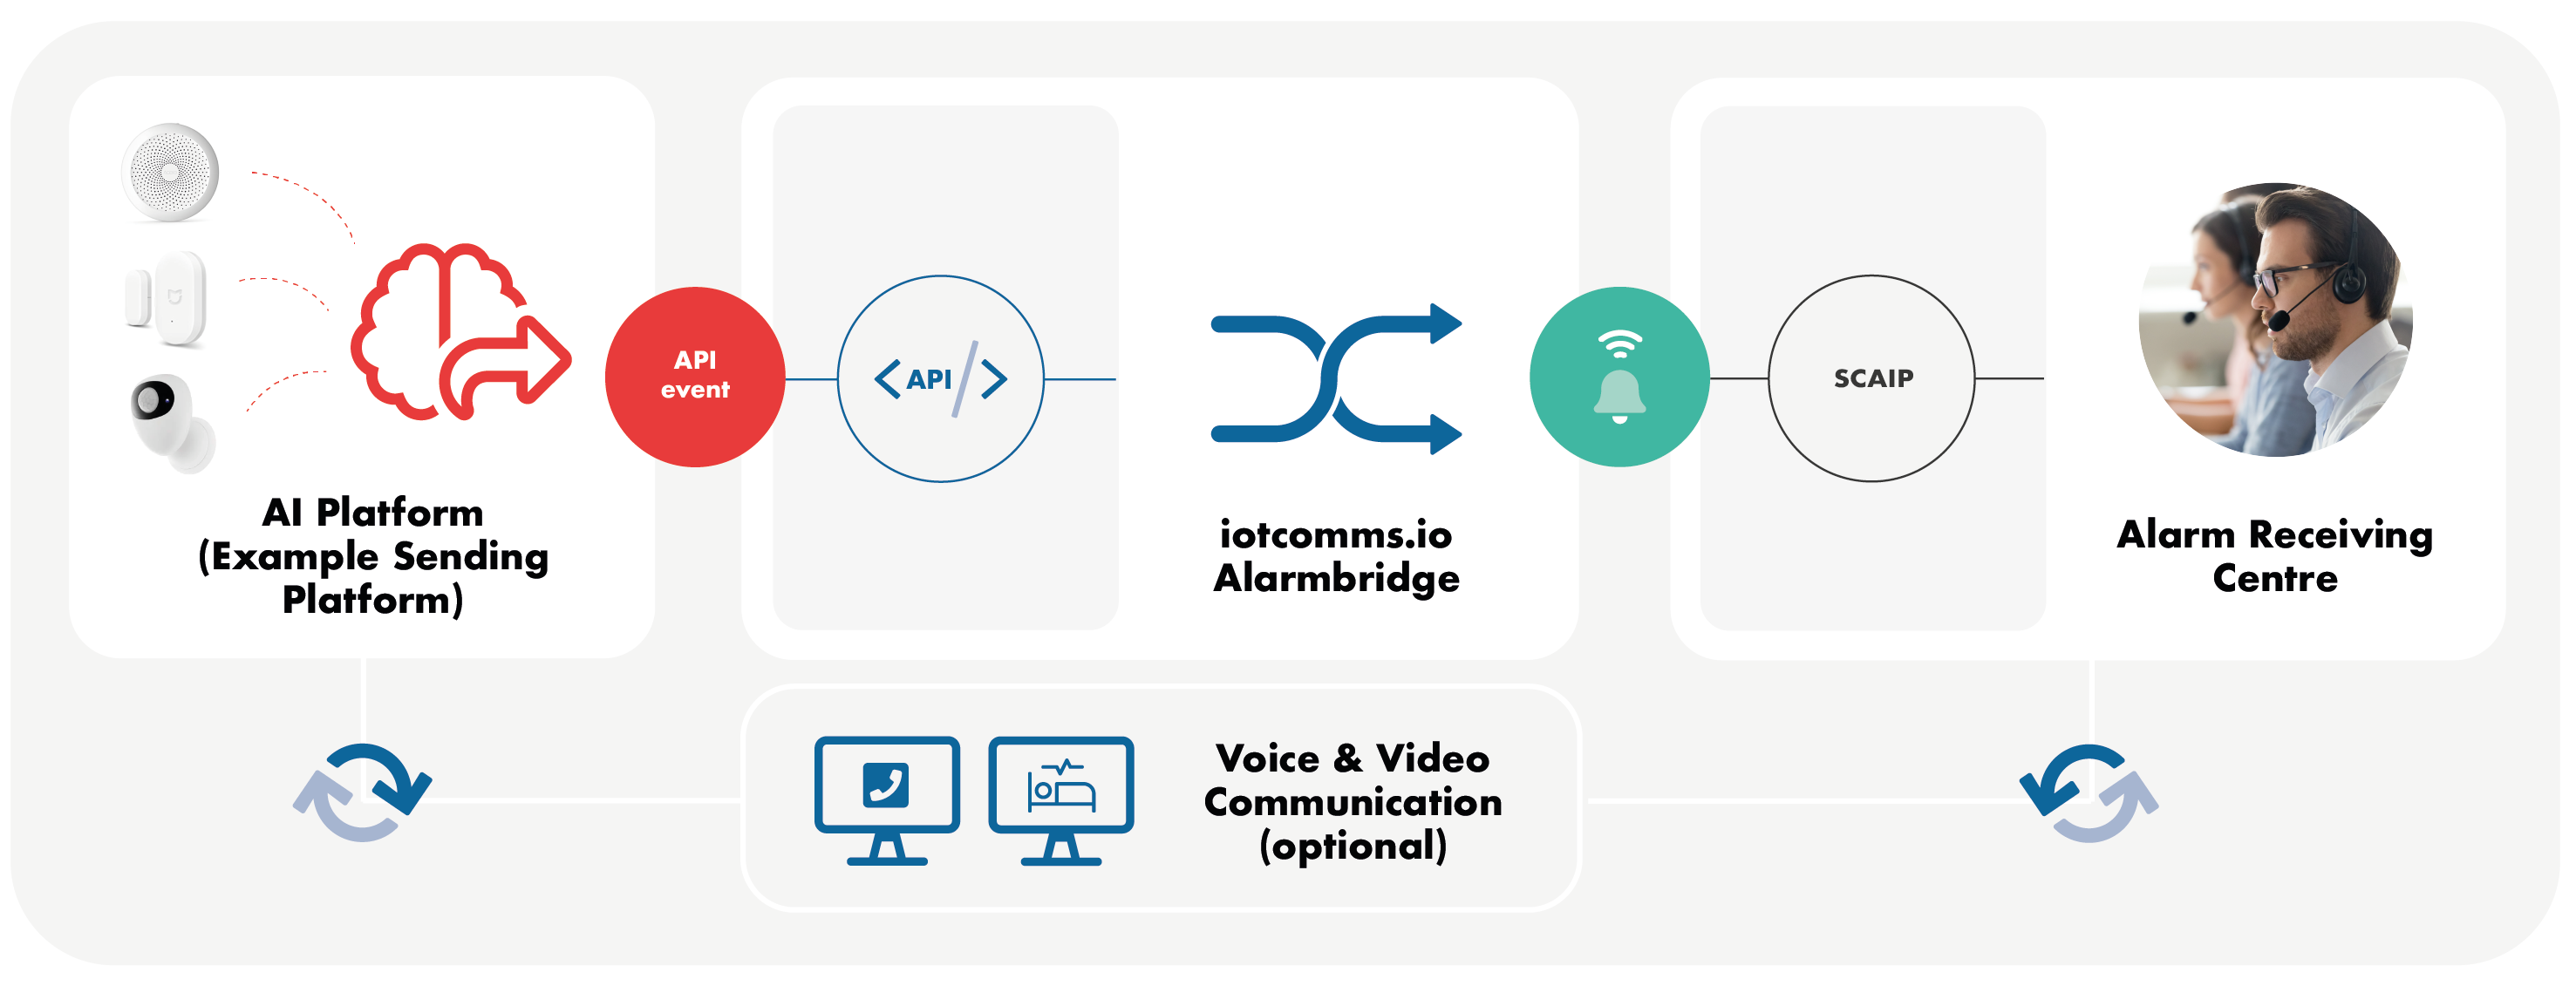 Connect your platform to ARC running a standard IP based care protocol